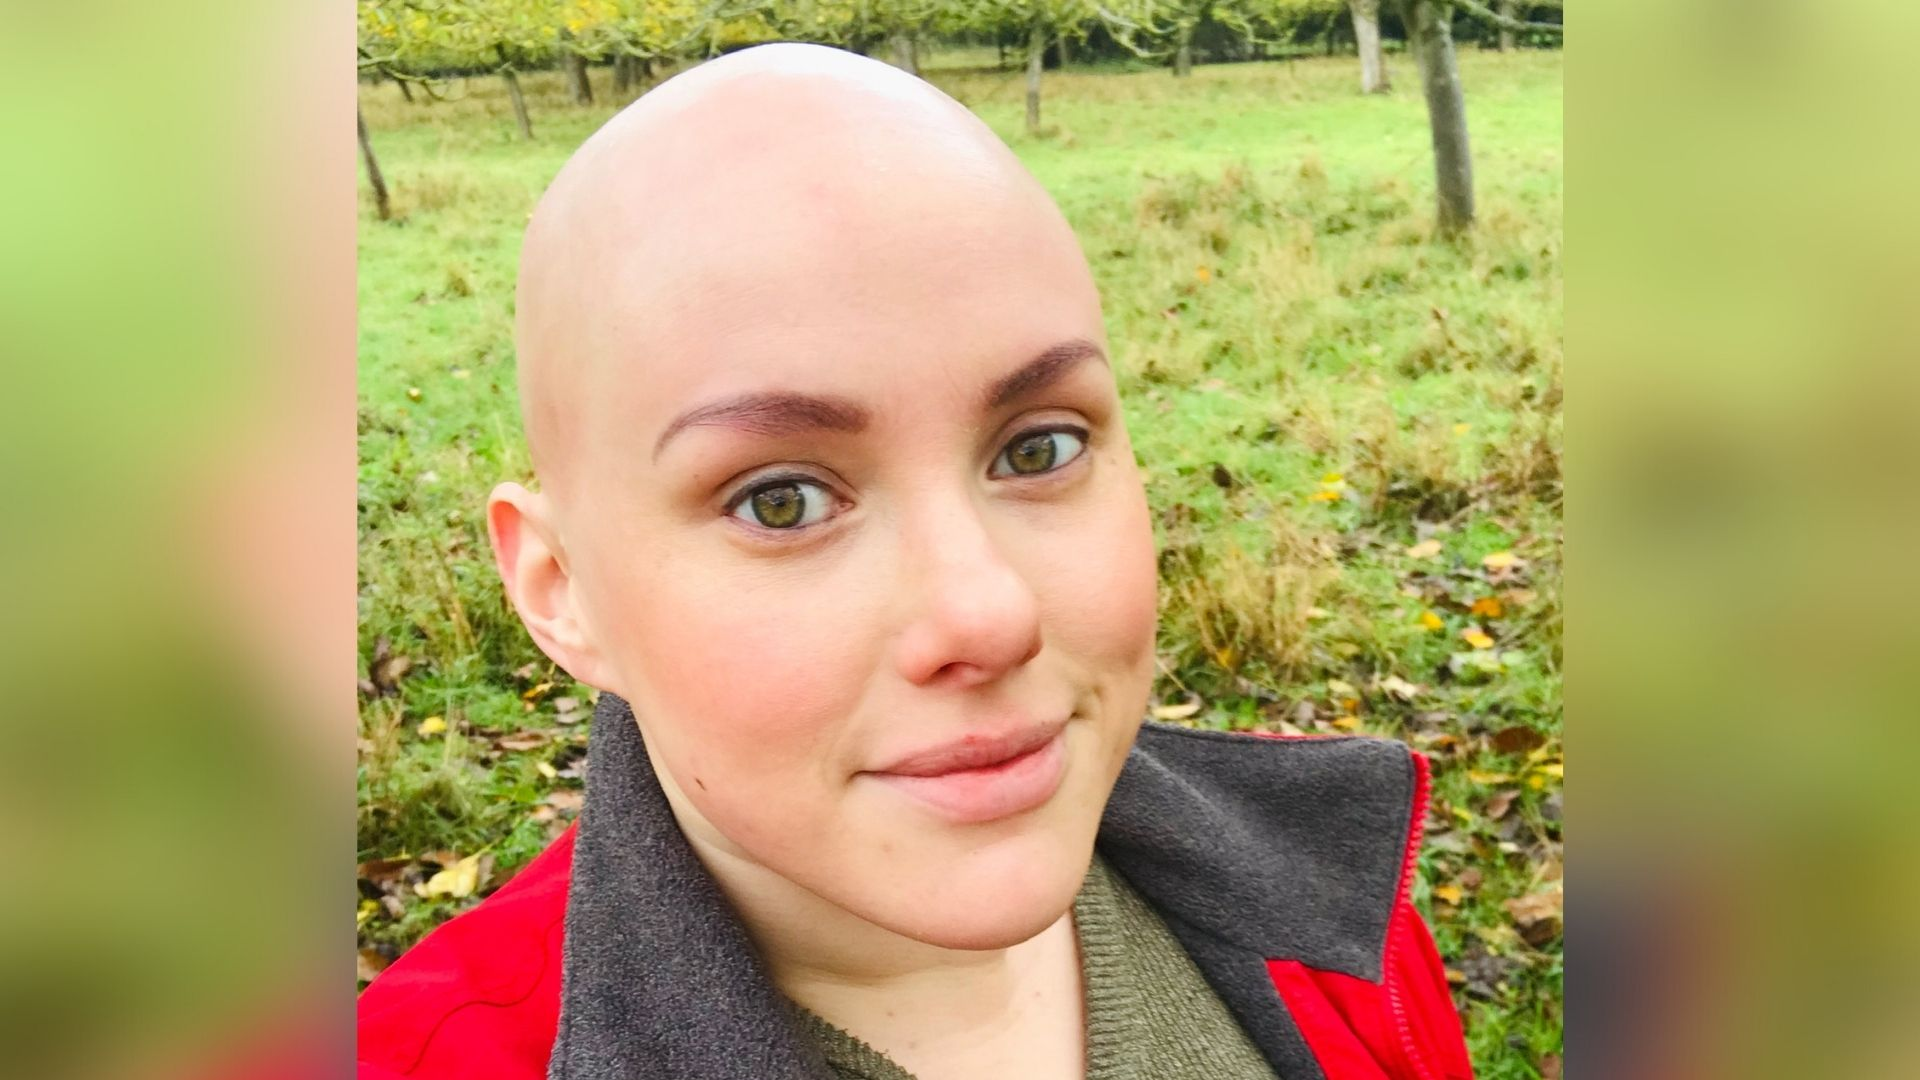 Laura, a woman with alopecia. She has green eyes and is wearing a red fleece with a grey lining and looking at the camera. There's a field behind her.